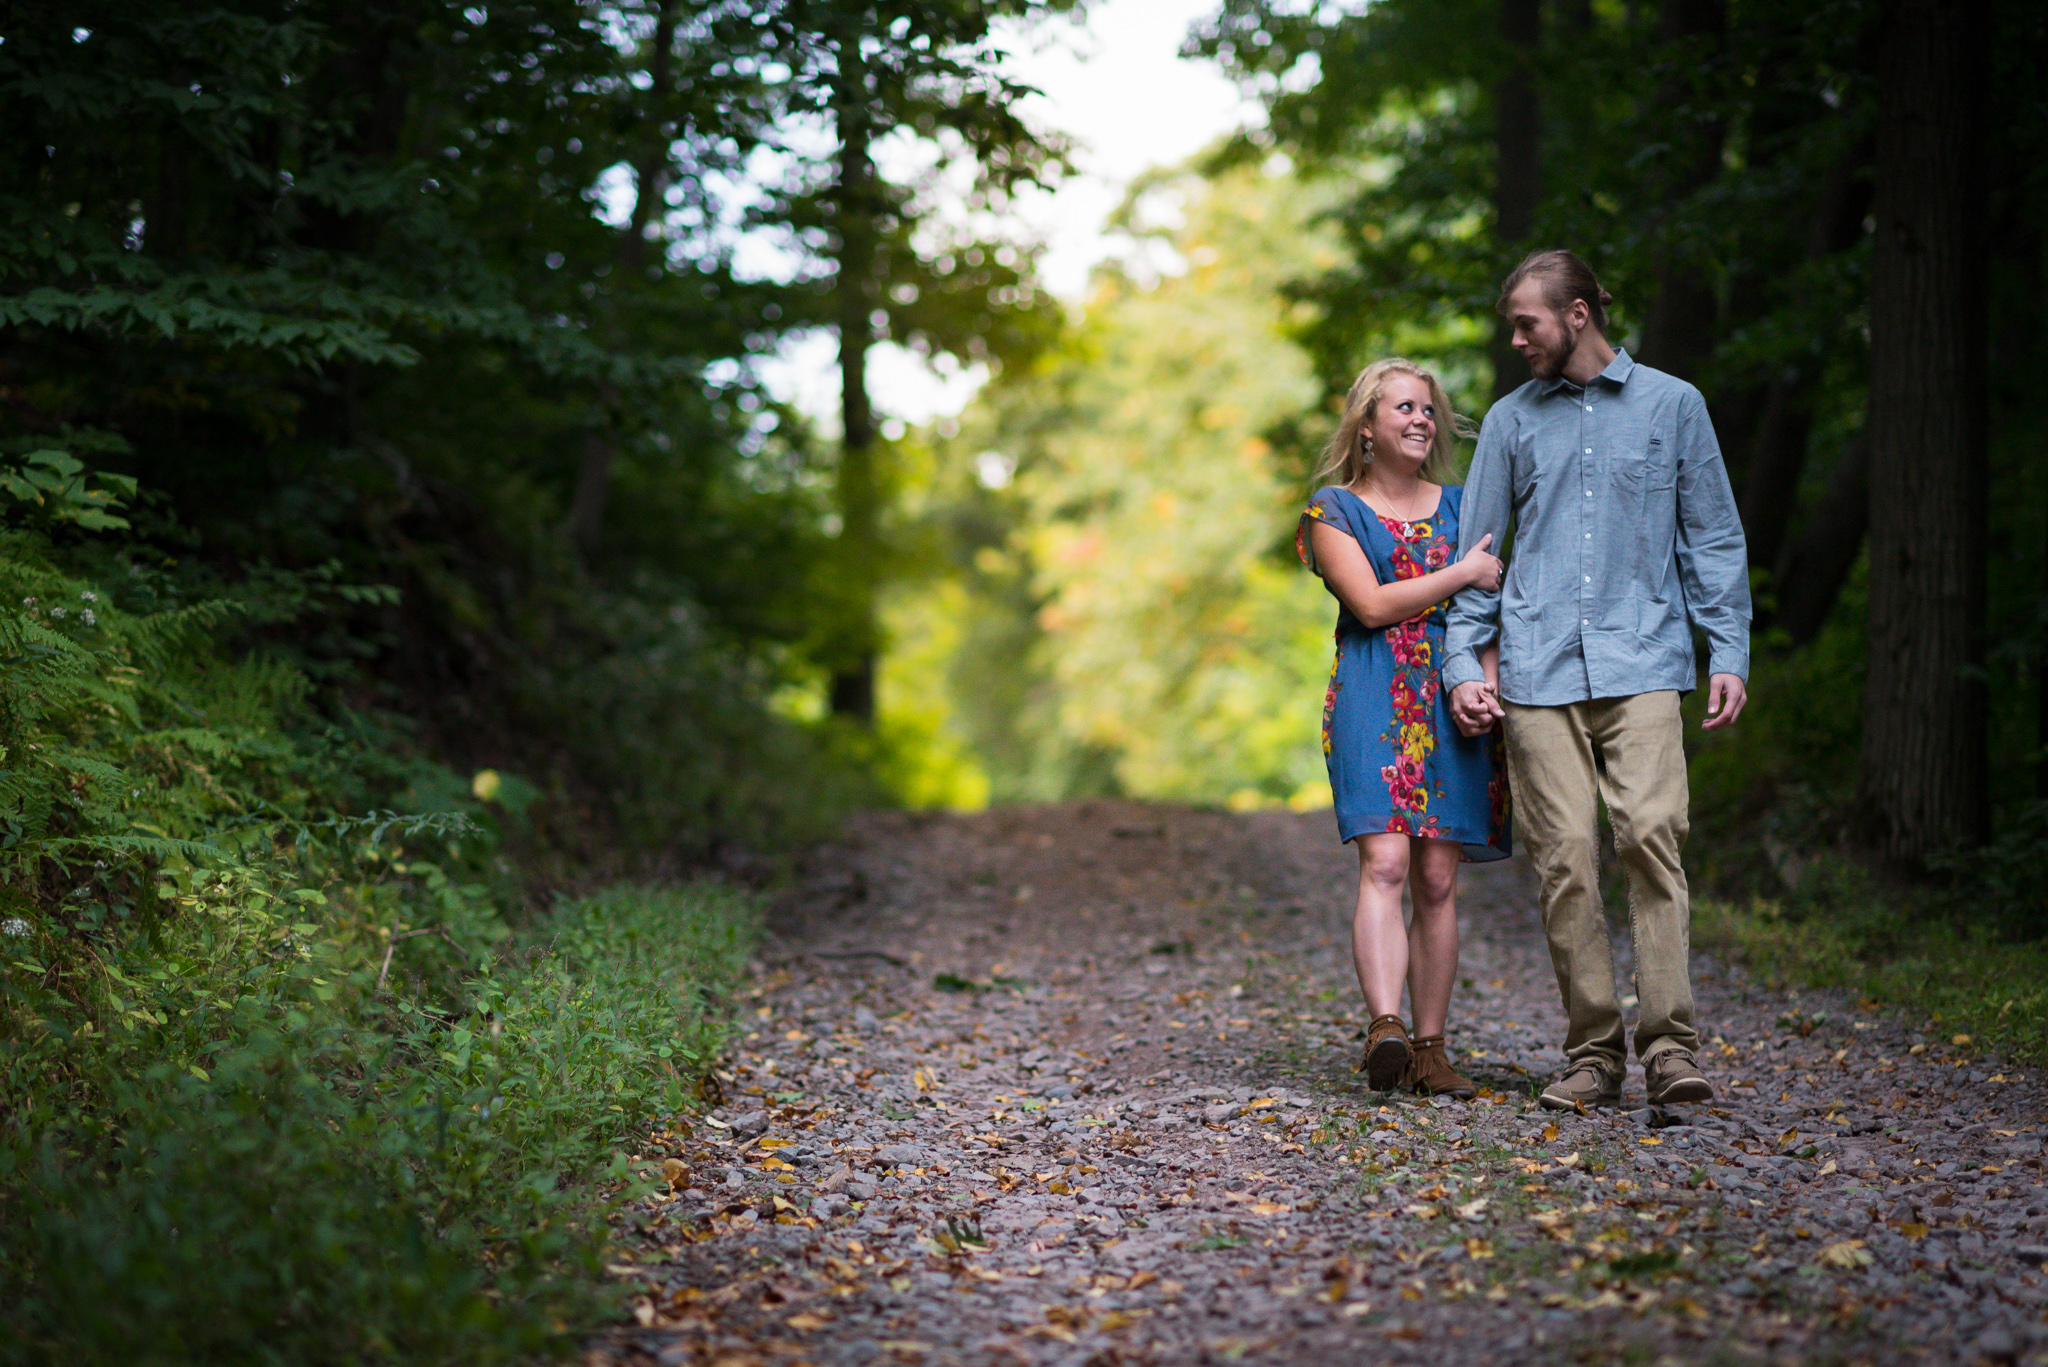 Elk-mountain-wedding-engagement-photography-uniondale-susquehanna-county-steven-serge-photography-18.jpg